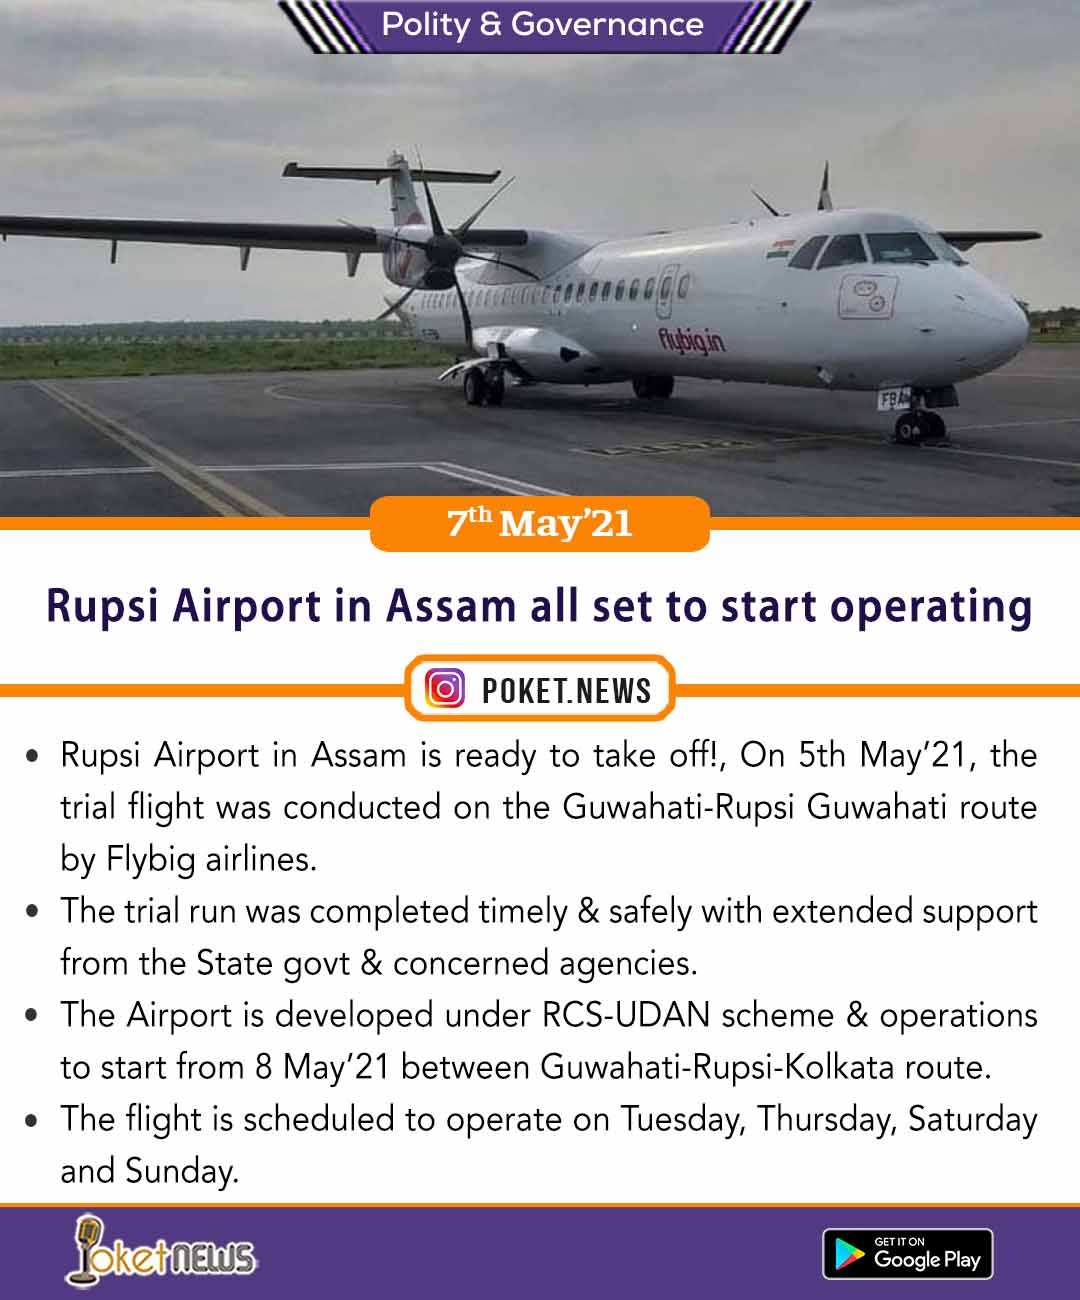 Rupsi Airport in Assam all set to start operating